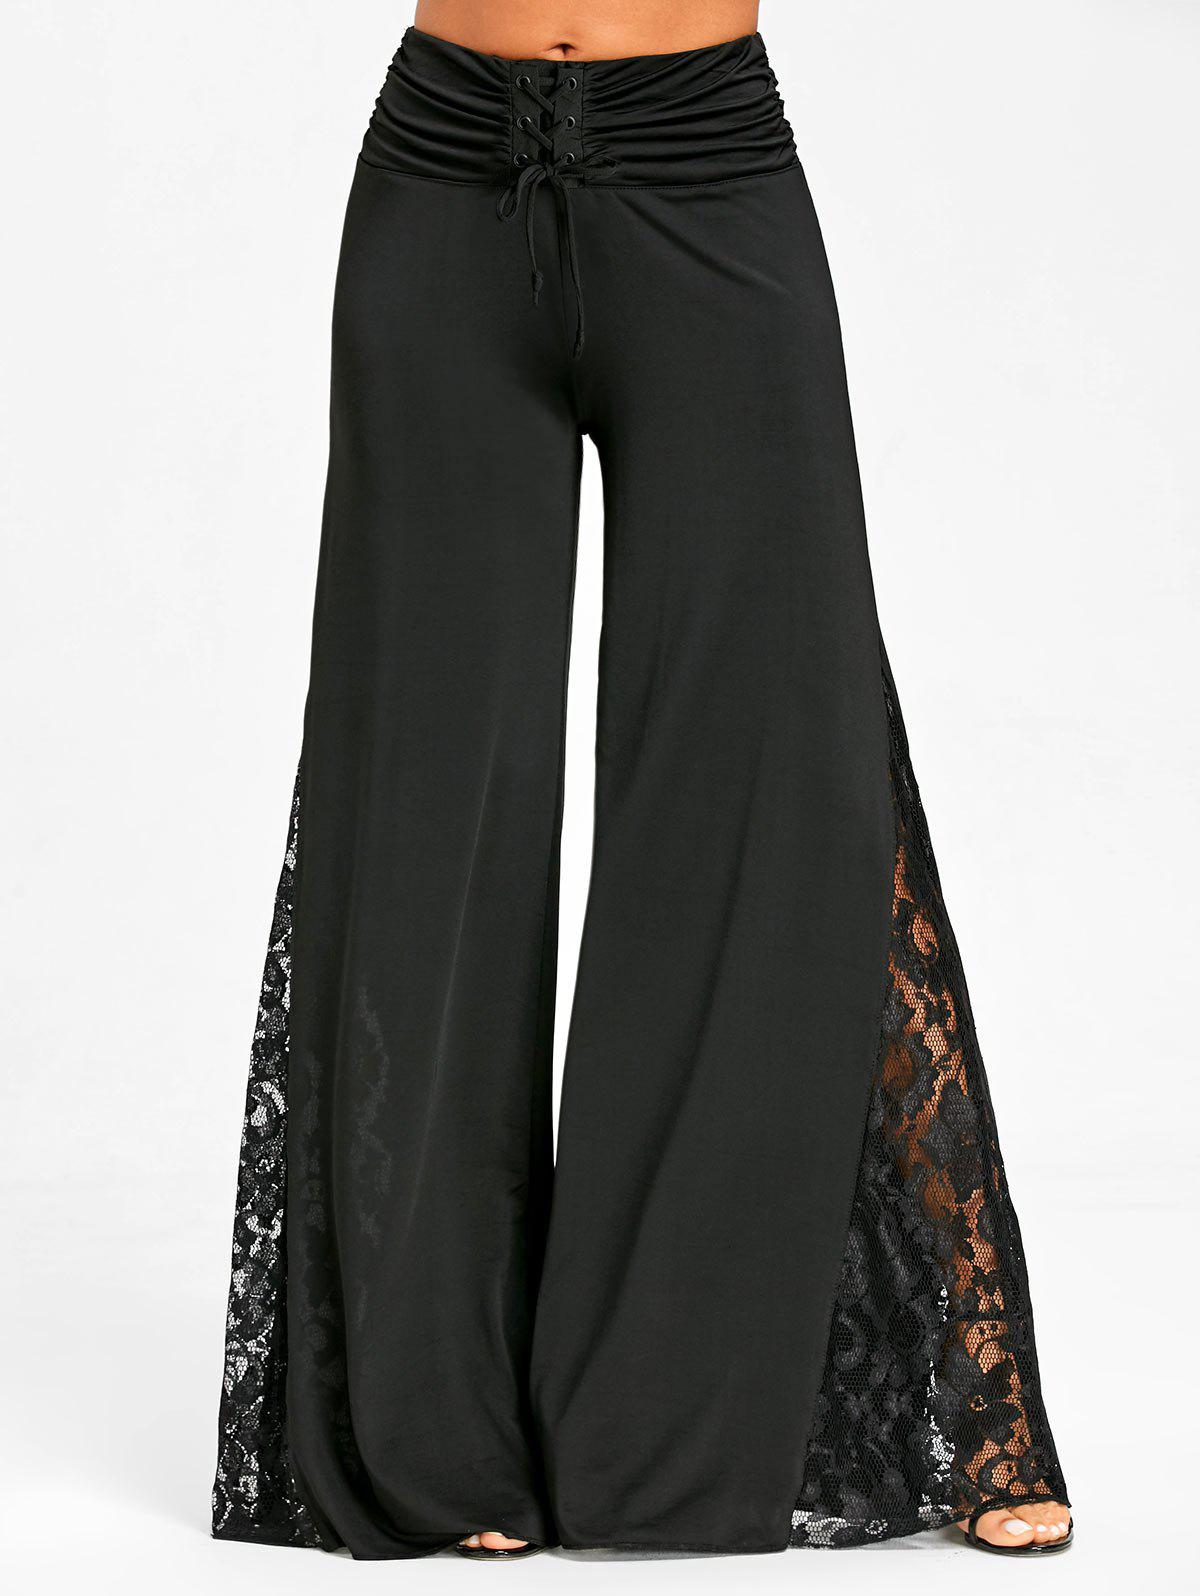 Lace Panel High Waist Palazzo Pants - BLACK M